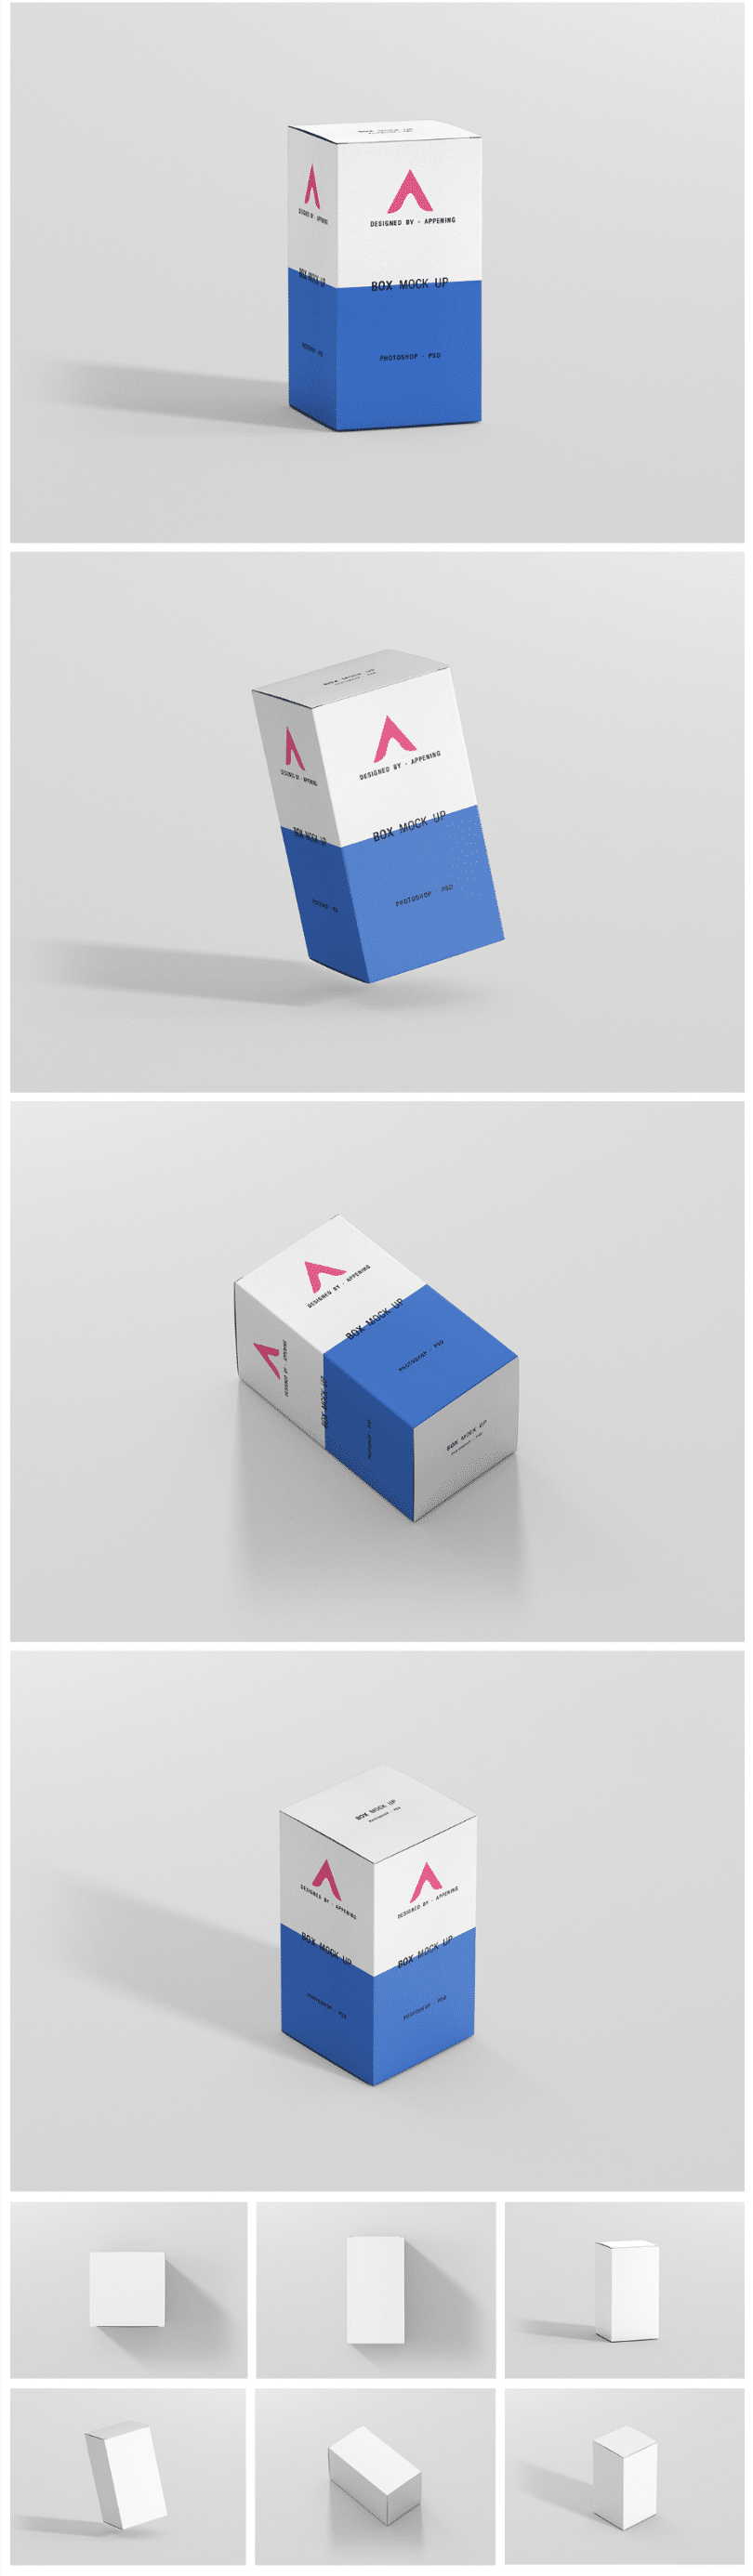 Pack Of Rectangle Box MockUp